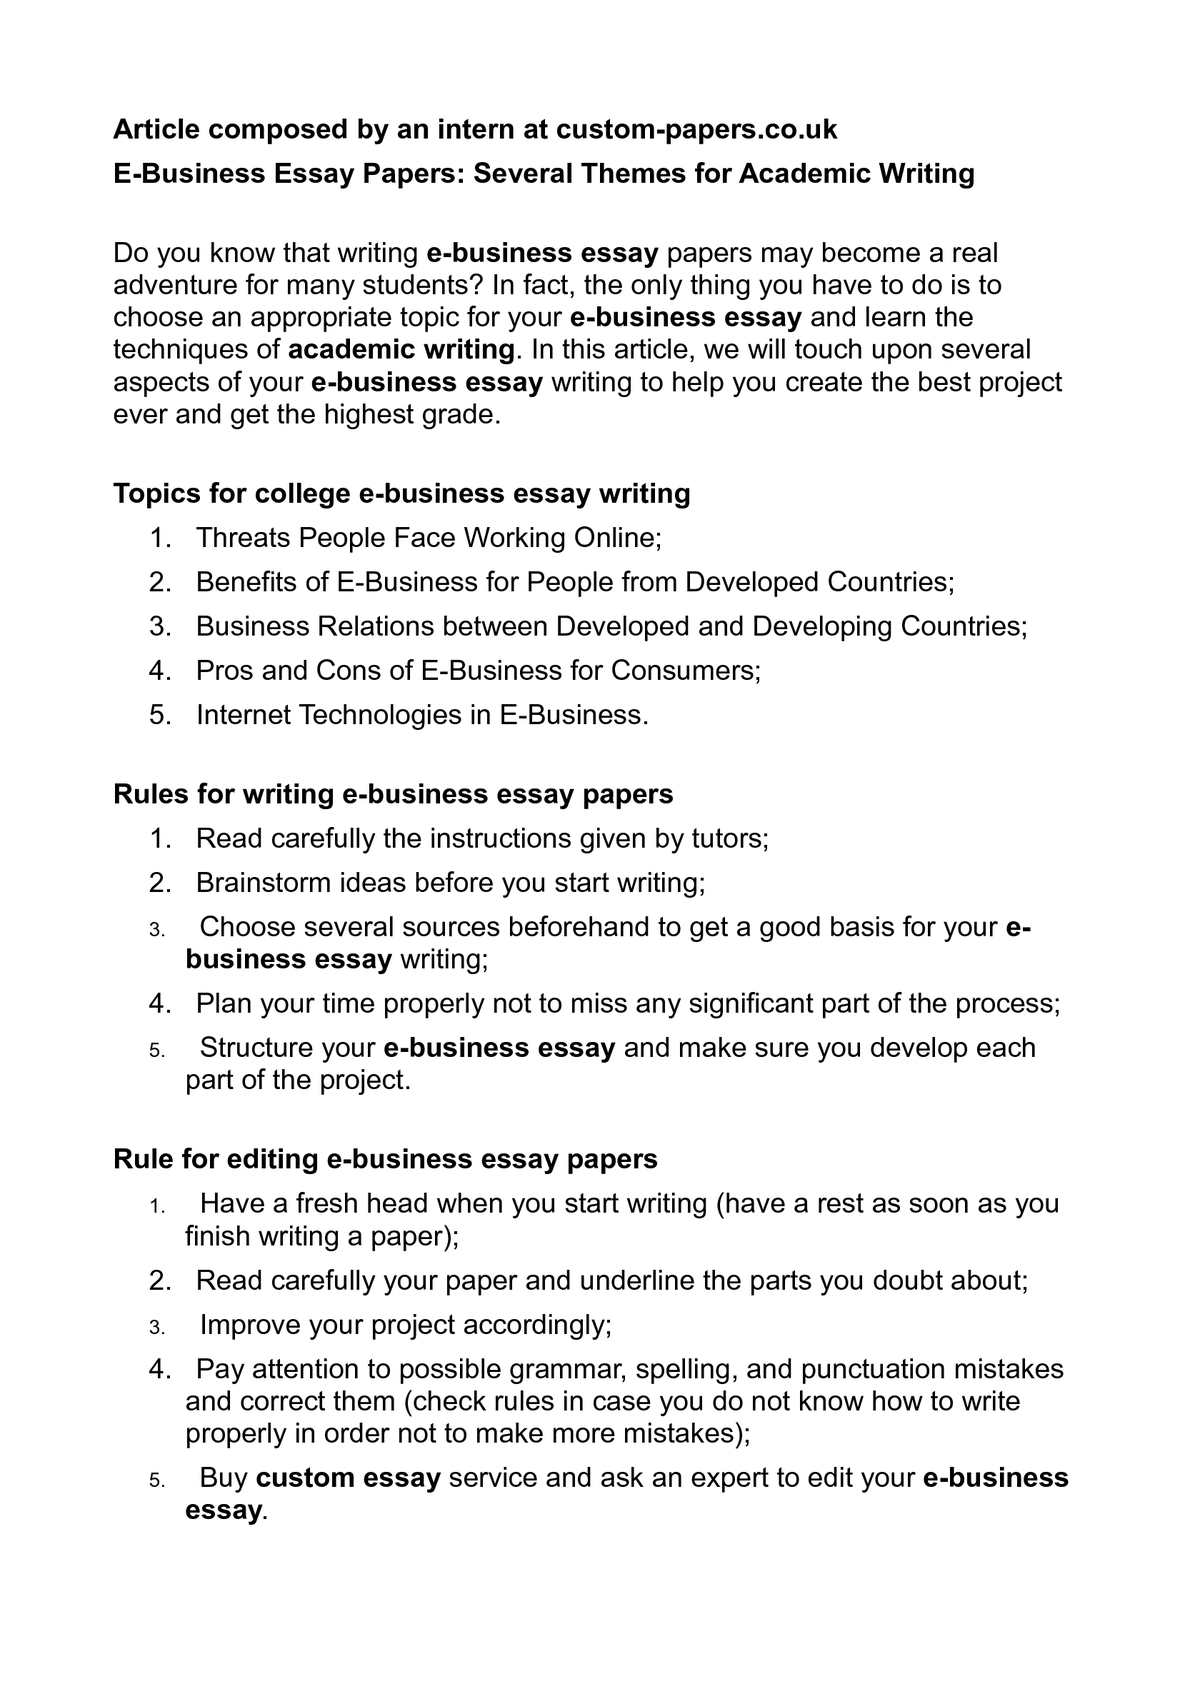 Conscience Essay  Business Ethics Essays also Write A Good Thesis Statement For An Essay Calamo   E Business Essay Papers Several Themes For  High School Essay Examples